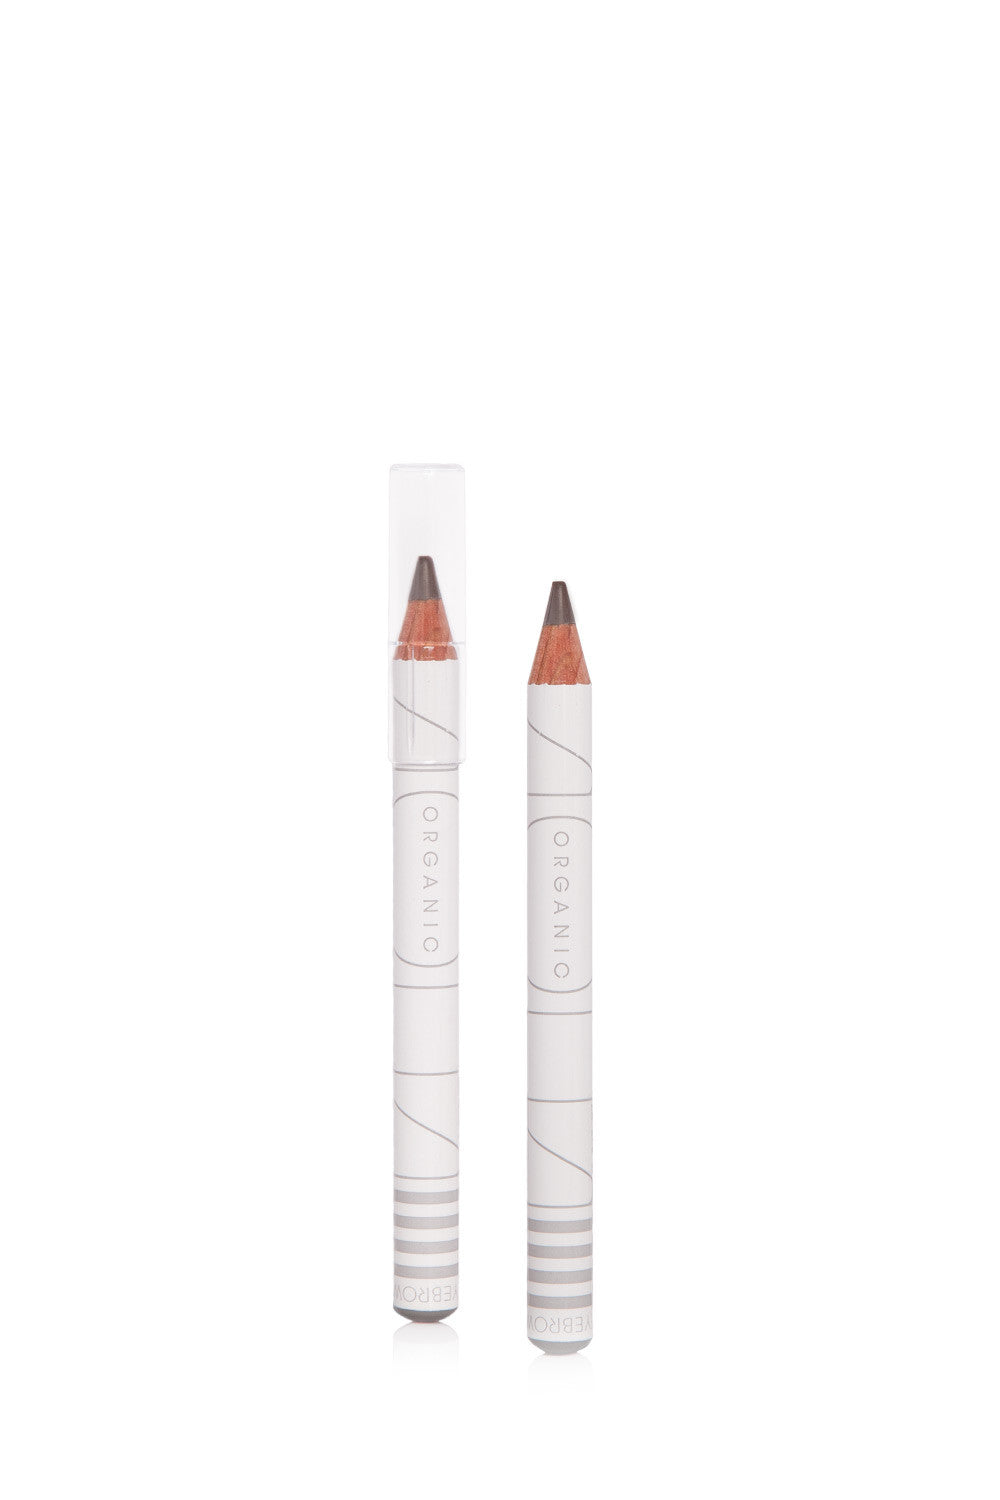 Aqua Organic Eyebrow Pencil